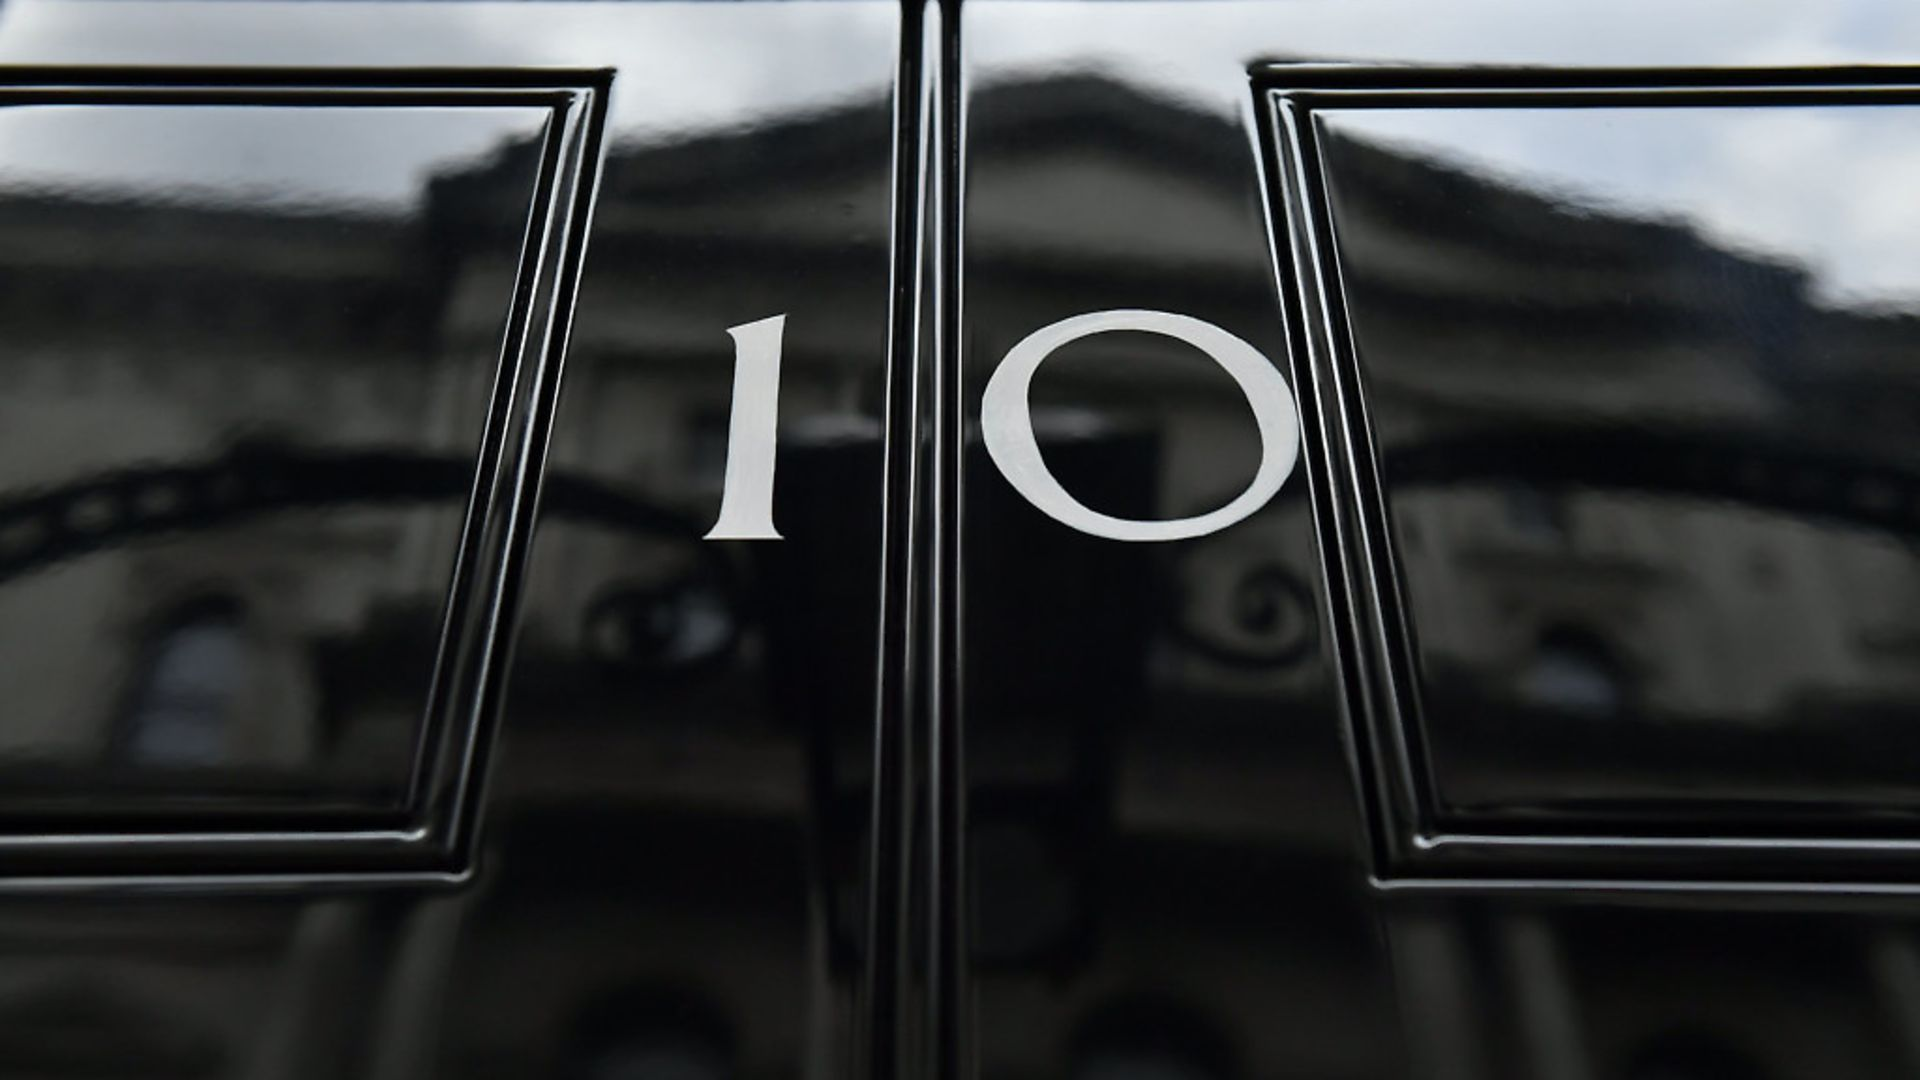 The front door of number 10 Downing Street in London. - Credit: PA